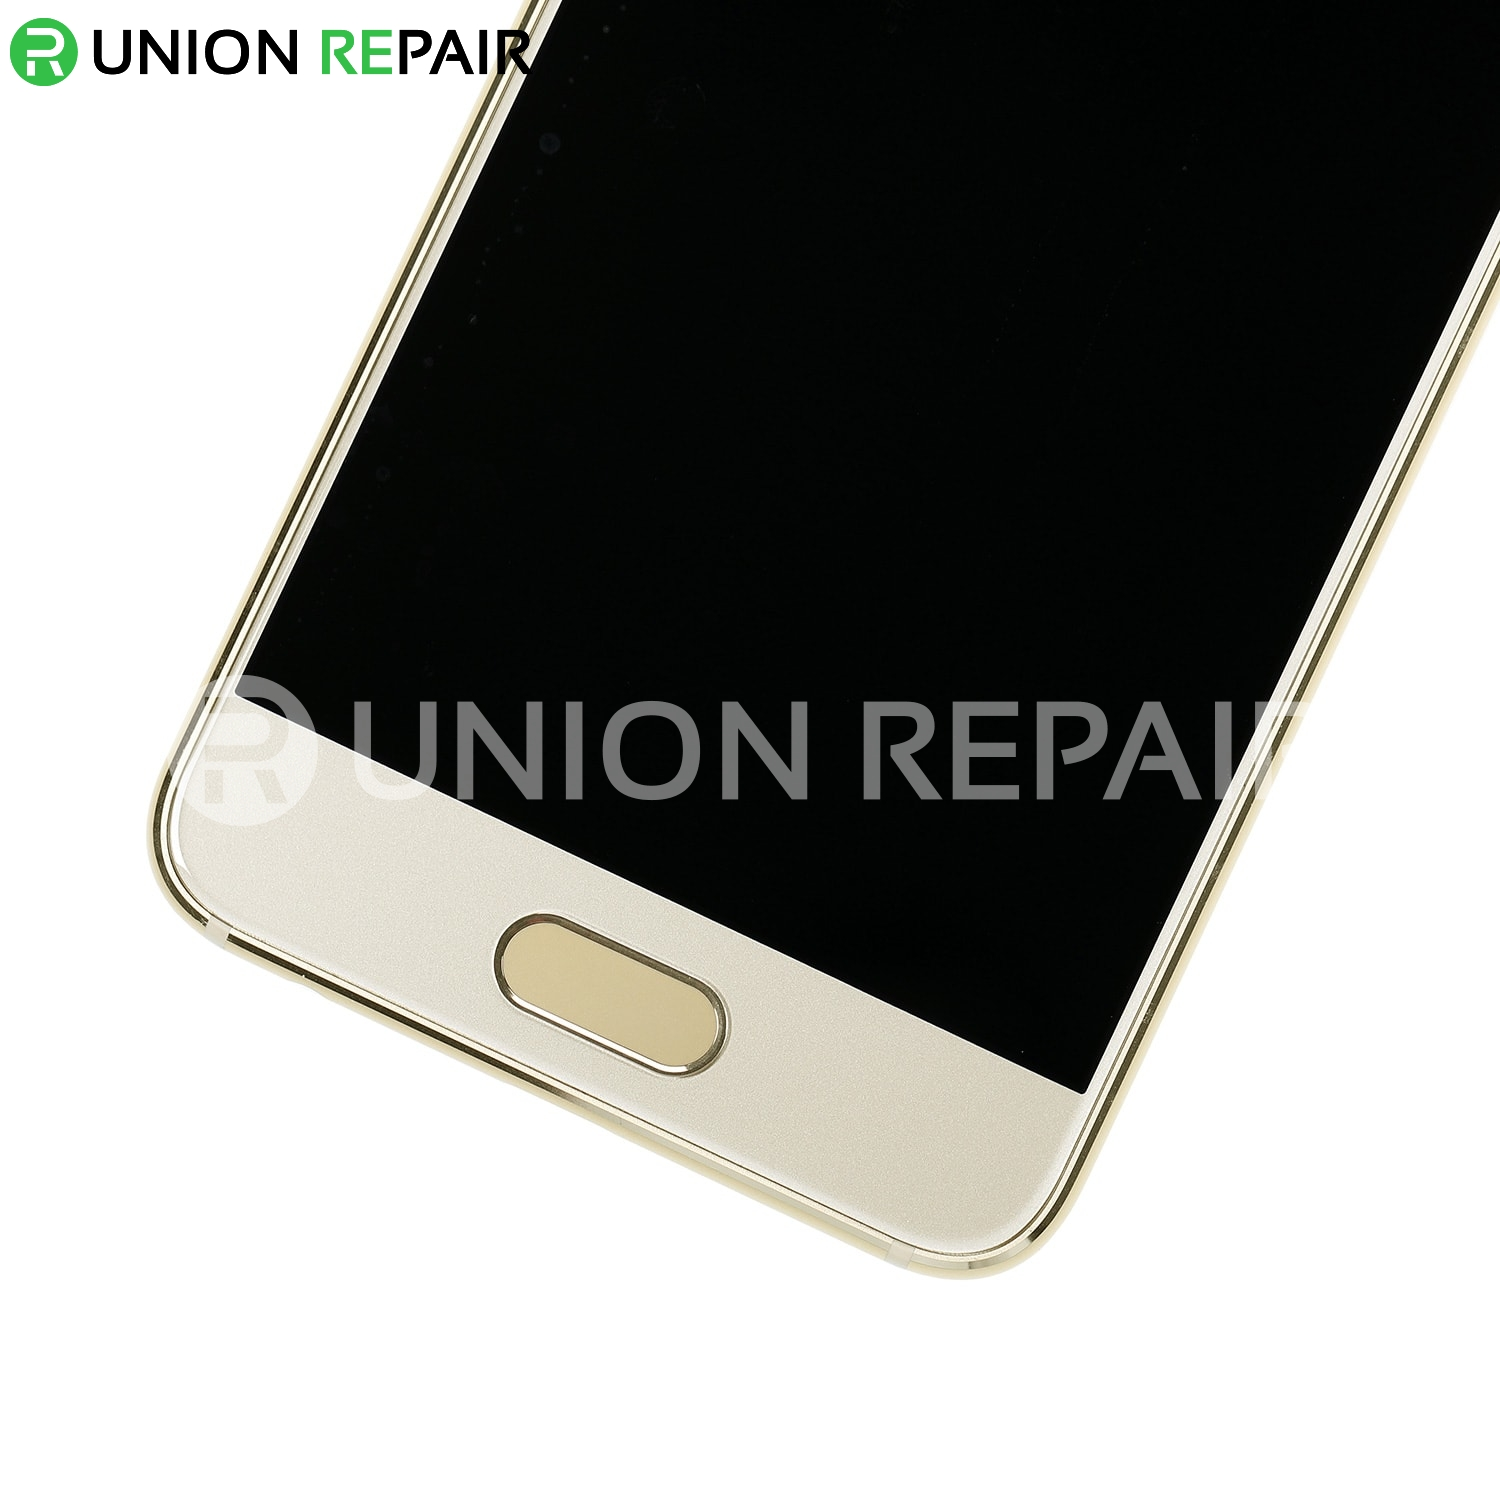 Replacement for Huawei Honor 9 LCD Screen Digitizer with Frame - Gold, fig. 1